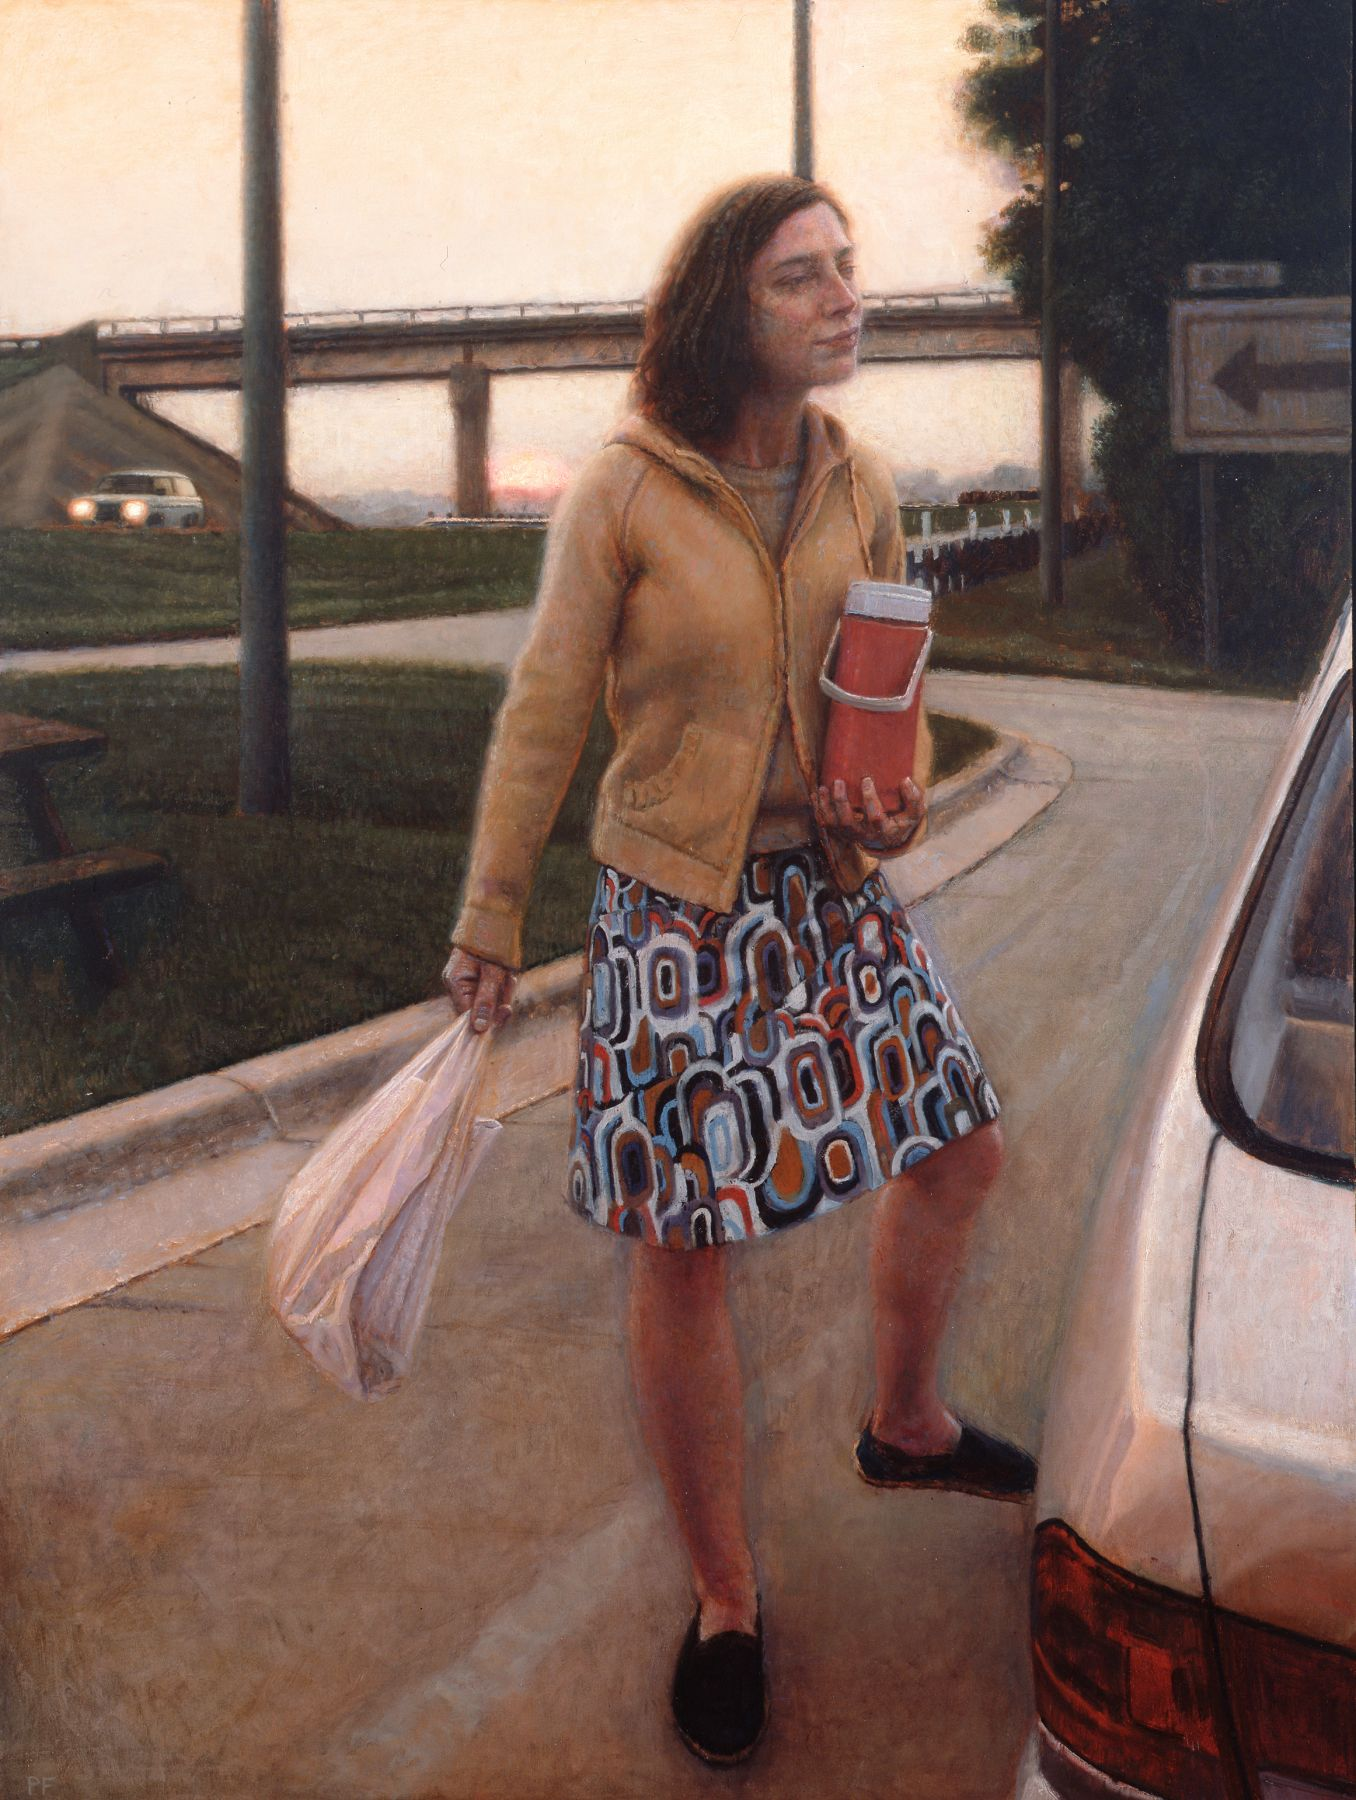 Paul Fenniak, Lay-By (SOLD), 2007, oil on canvas, 48 x 36 inches